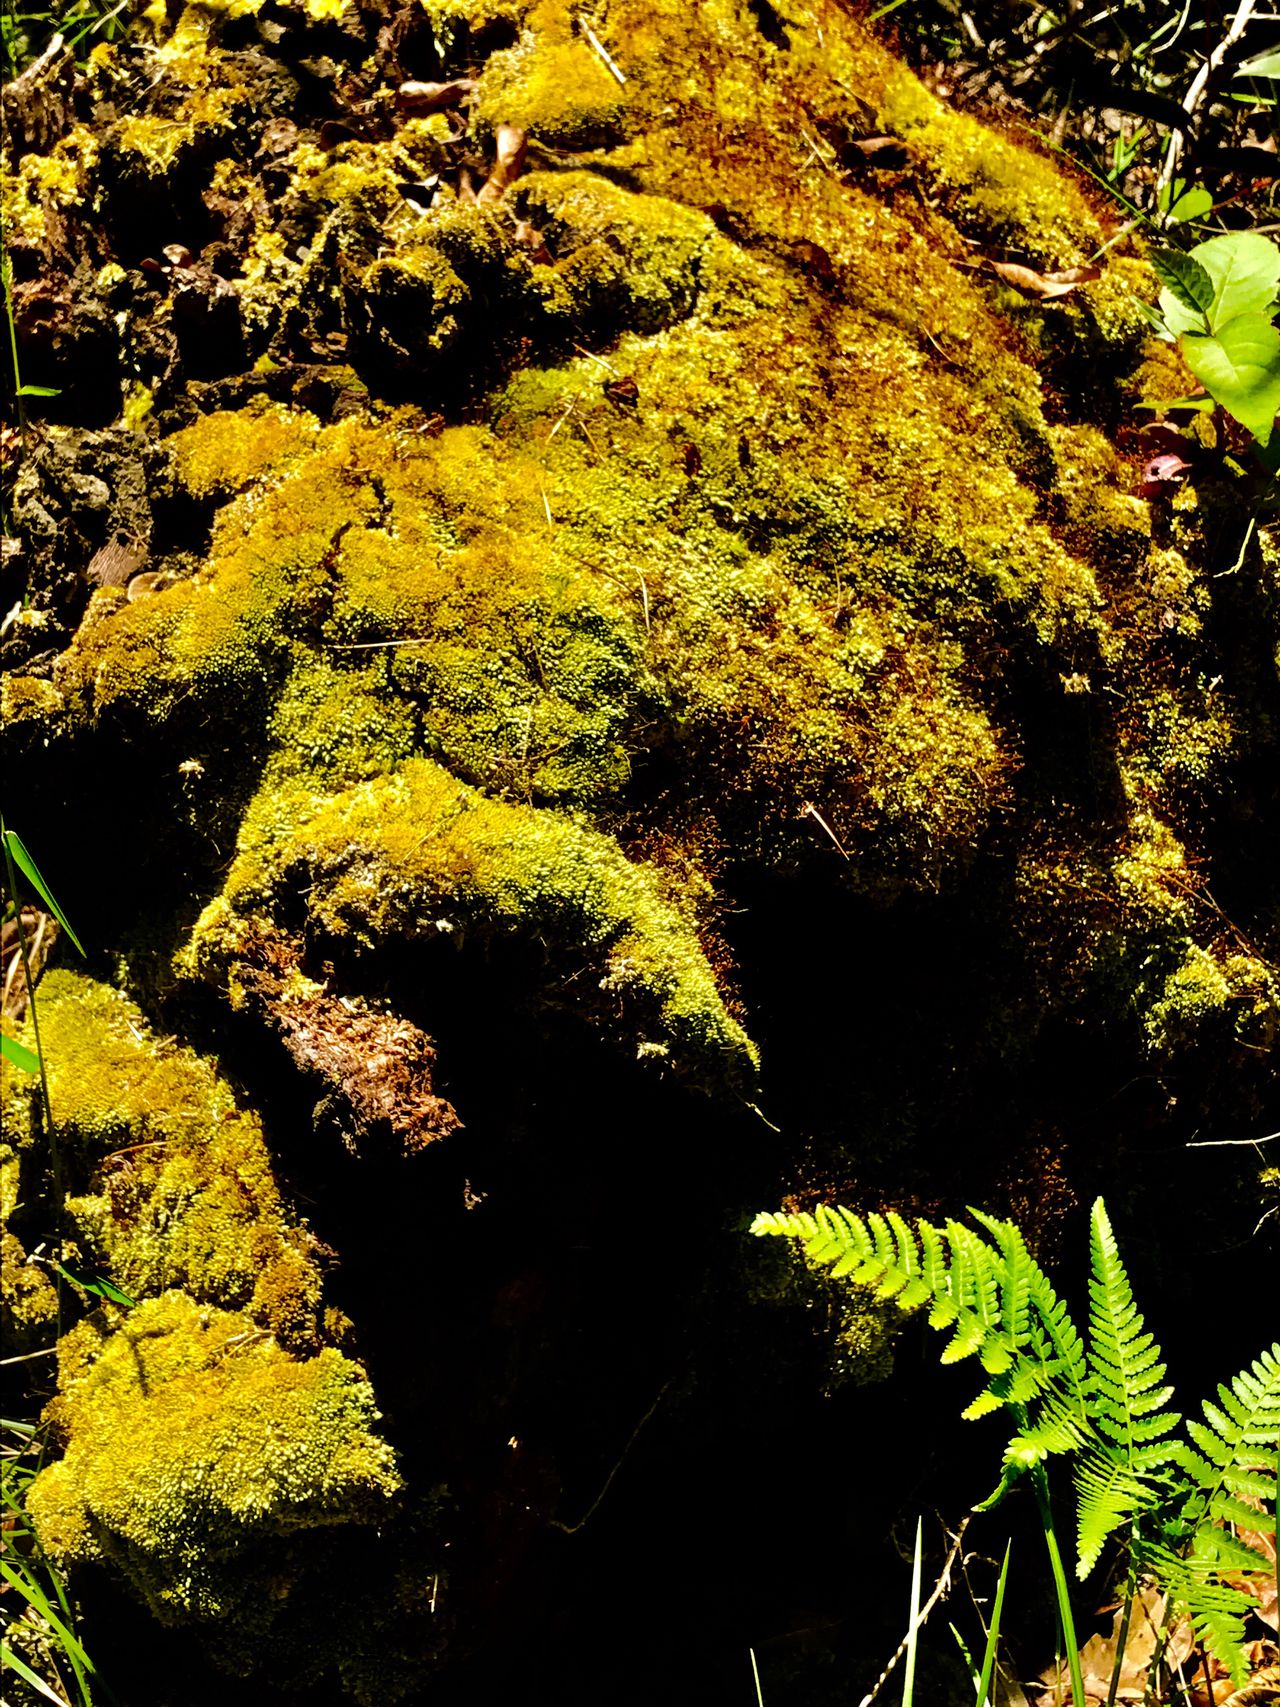 Close-up Moss Beauty In Nature Day Outdoors No People Waterfront Pattern Lights And Shadows Focus On Foreground Multi Colored Sunlight City Illuminated No Filter, No Edit, Just Photography